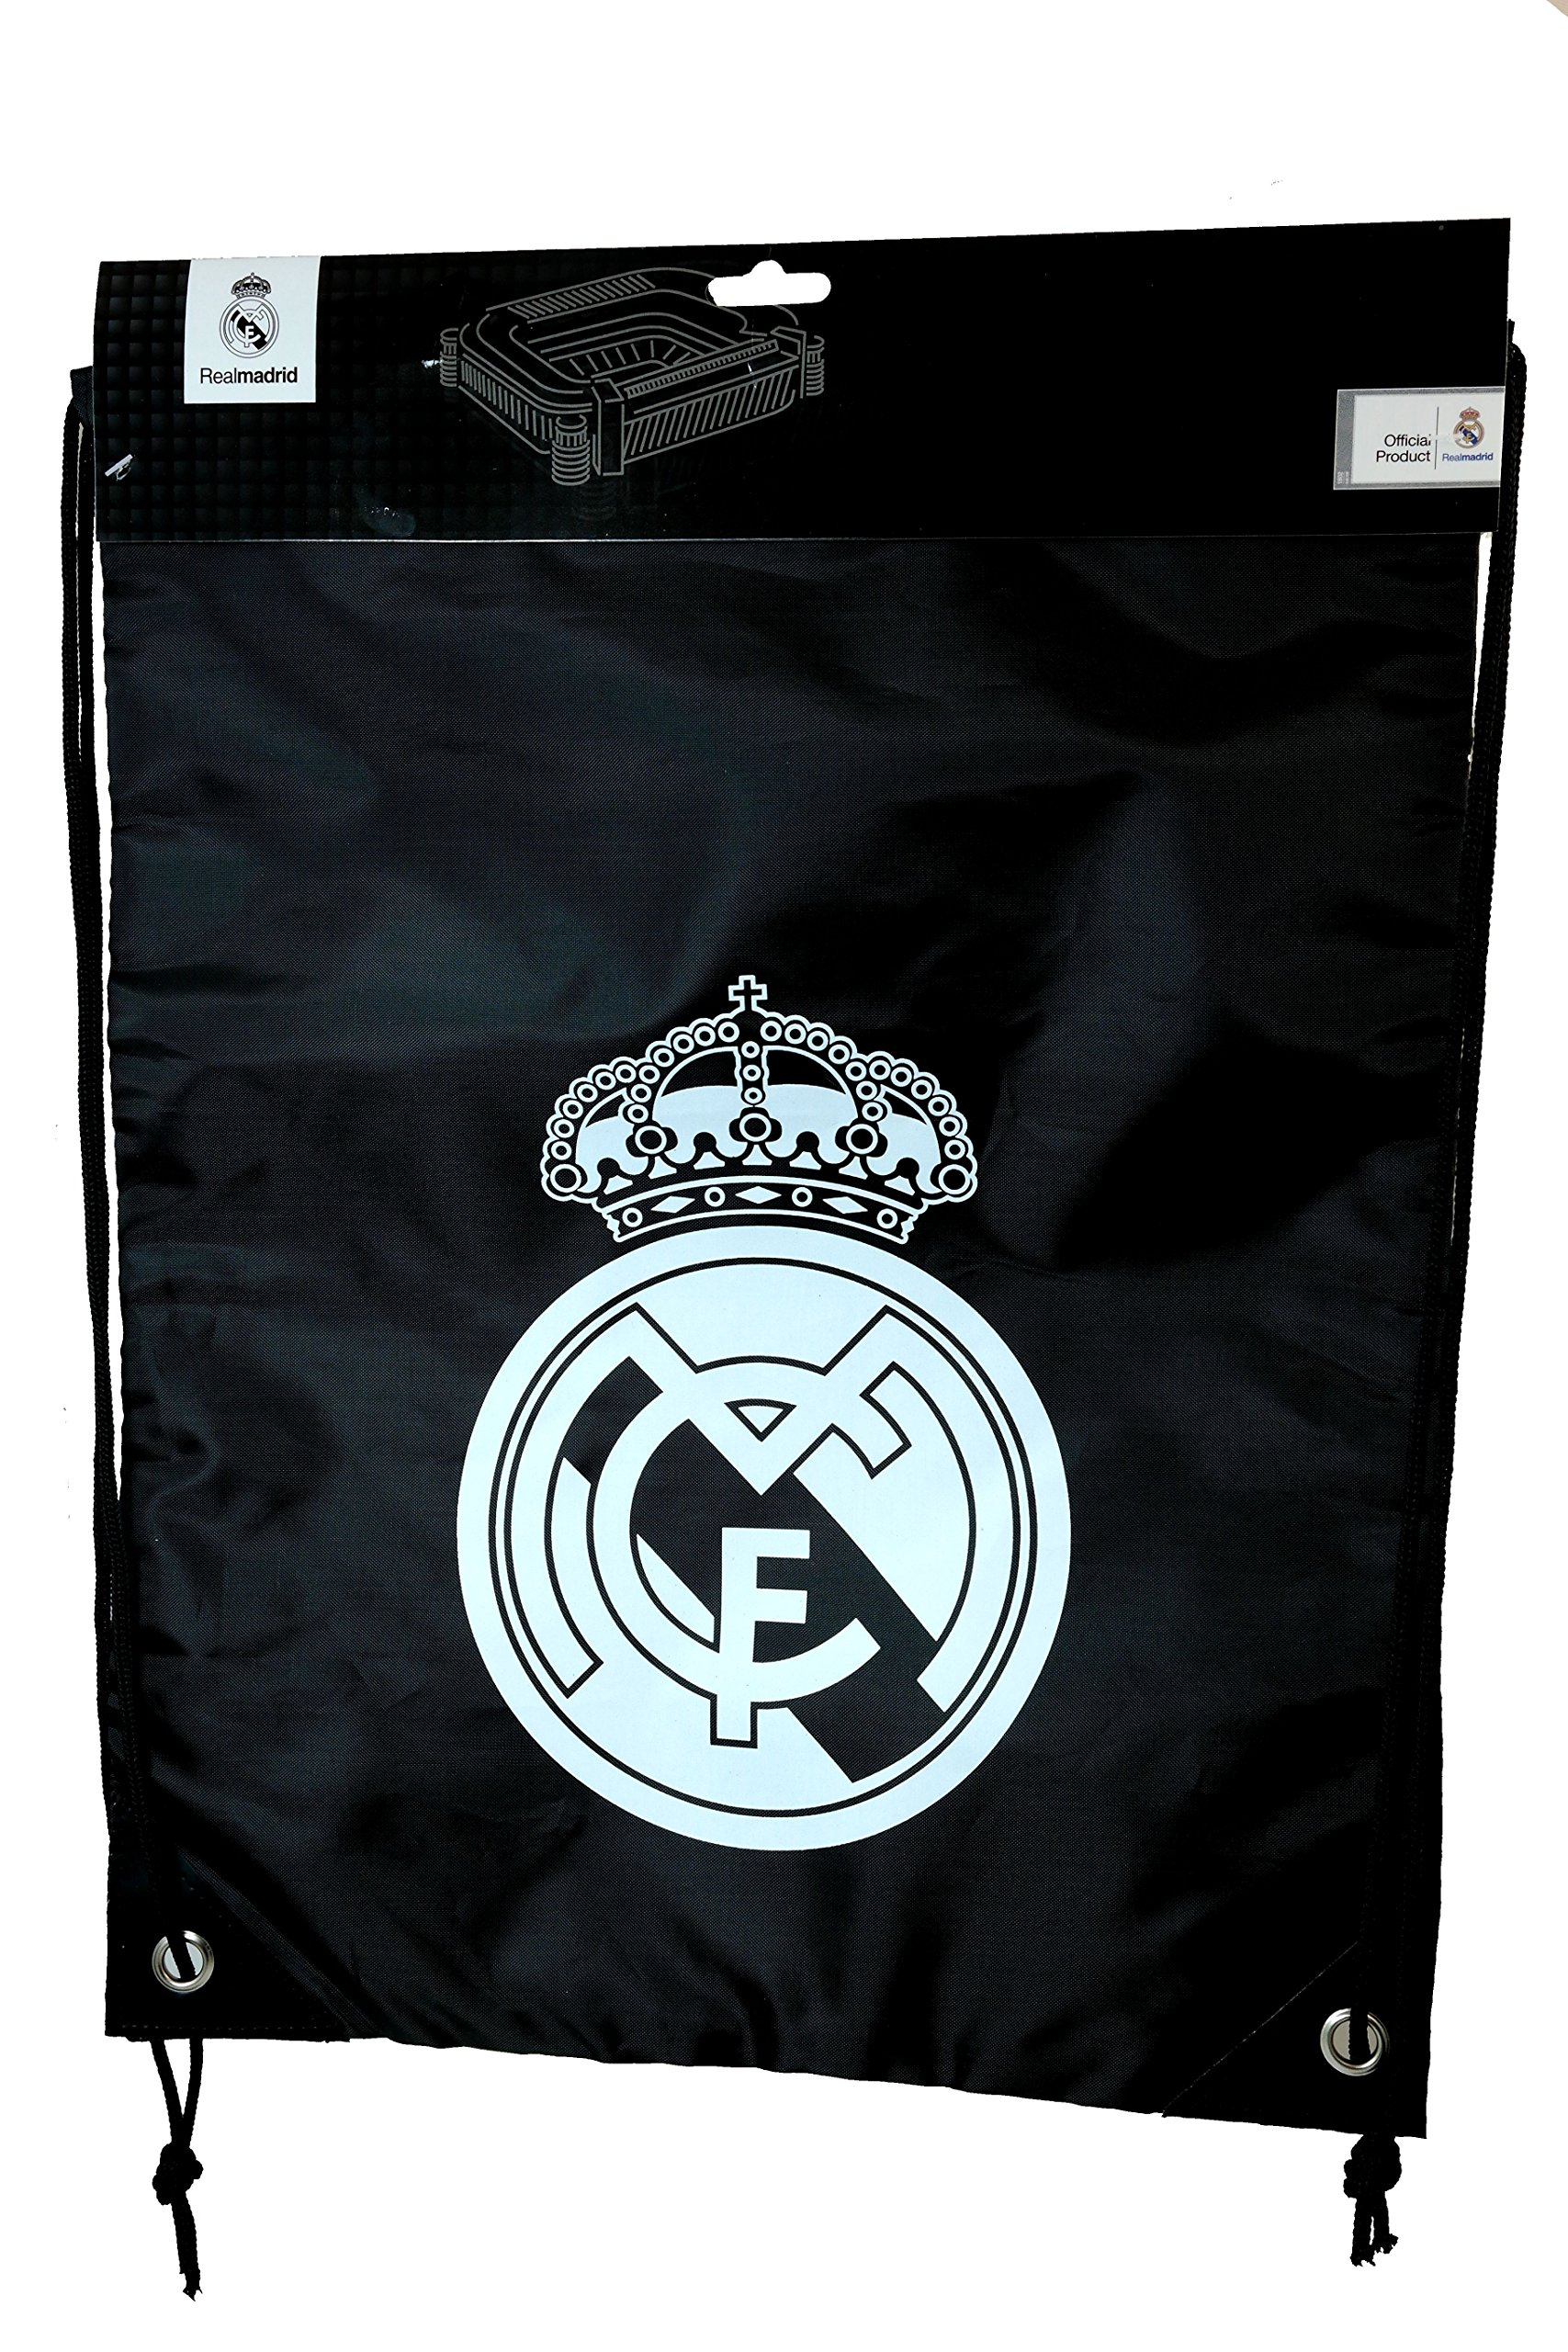 Real Madrid Authentic Official Licensed Soccer Drawstring Cinch Bag 01